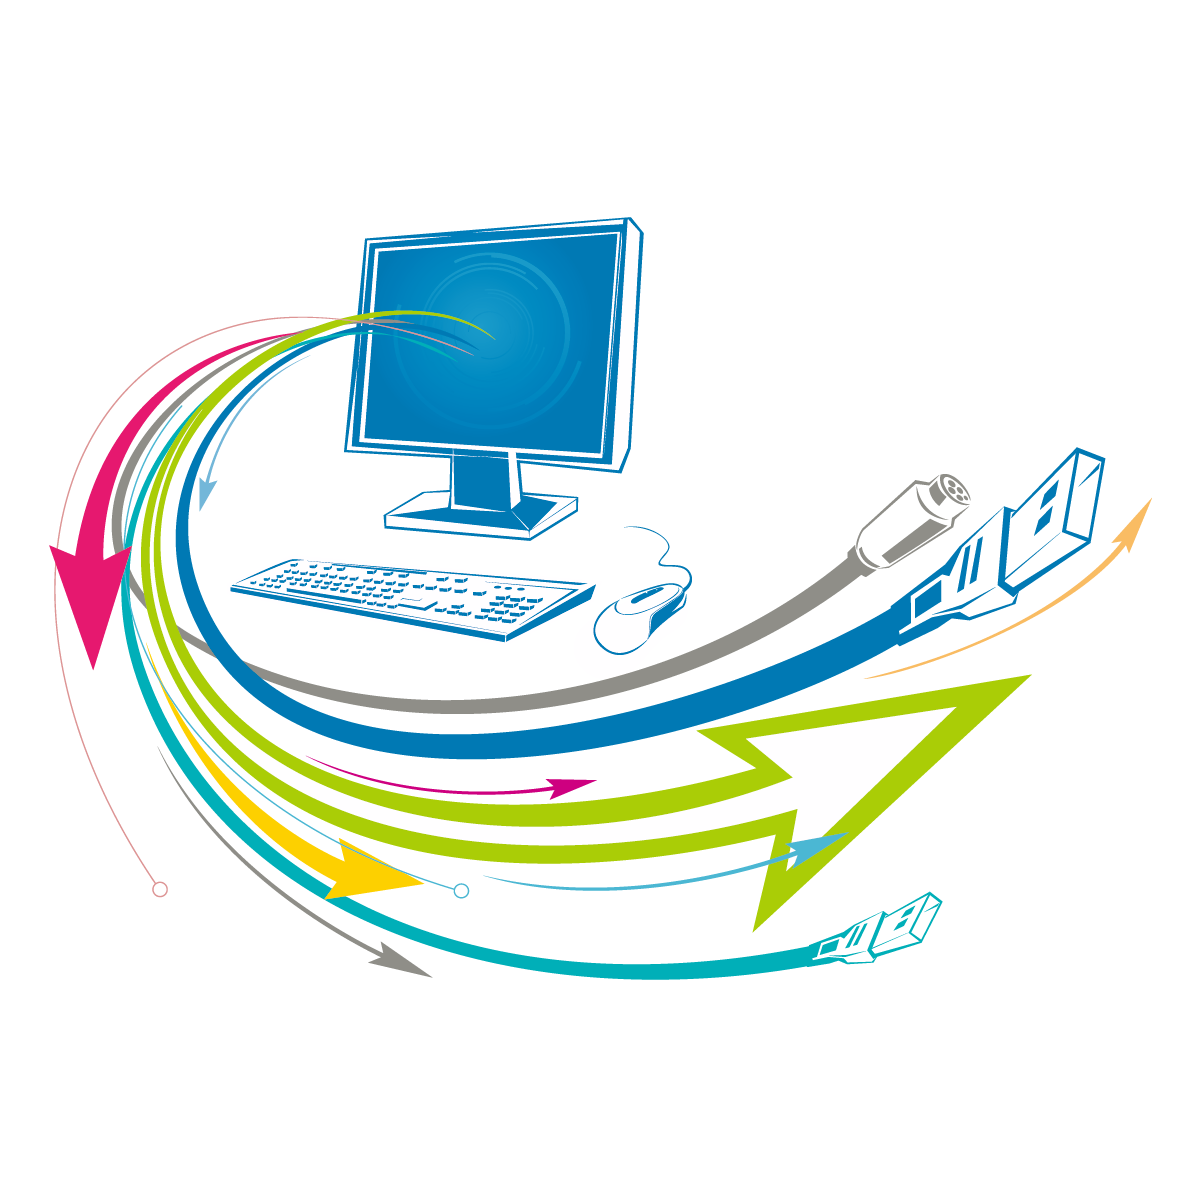 Network clipart computer wire. Technology euclidean vector icon